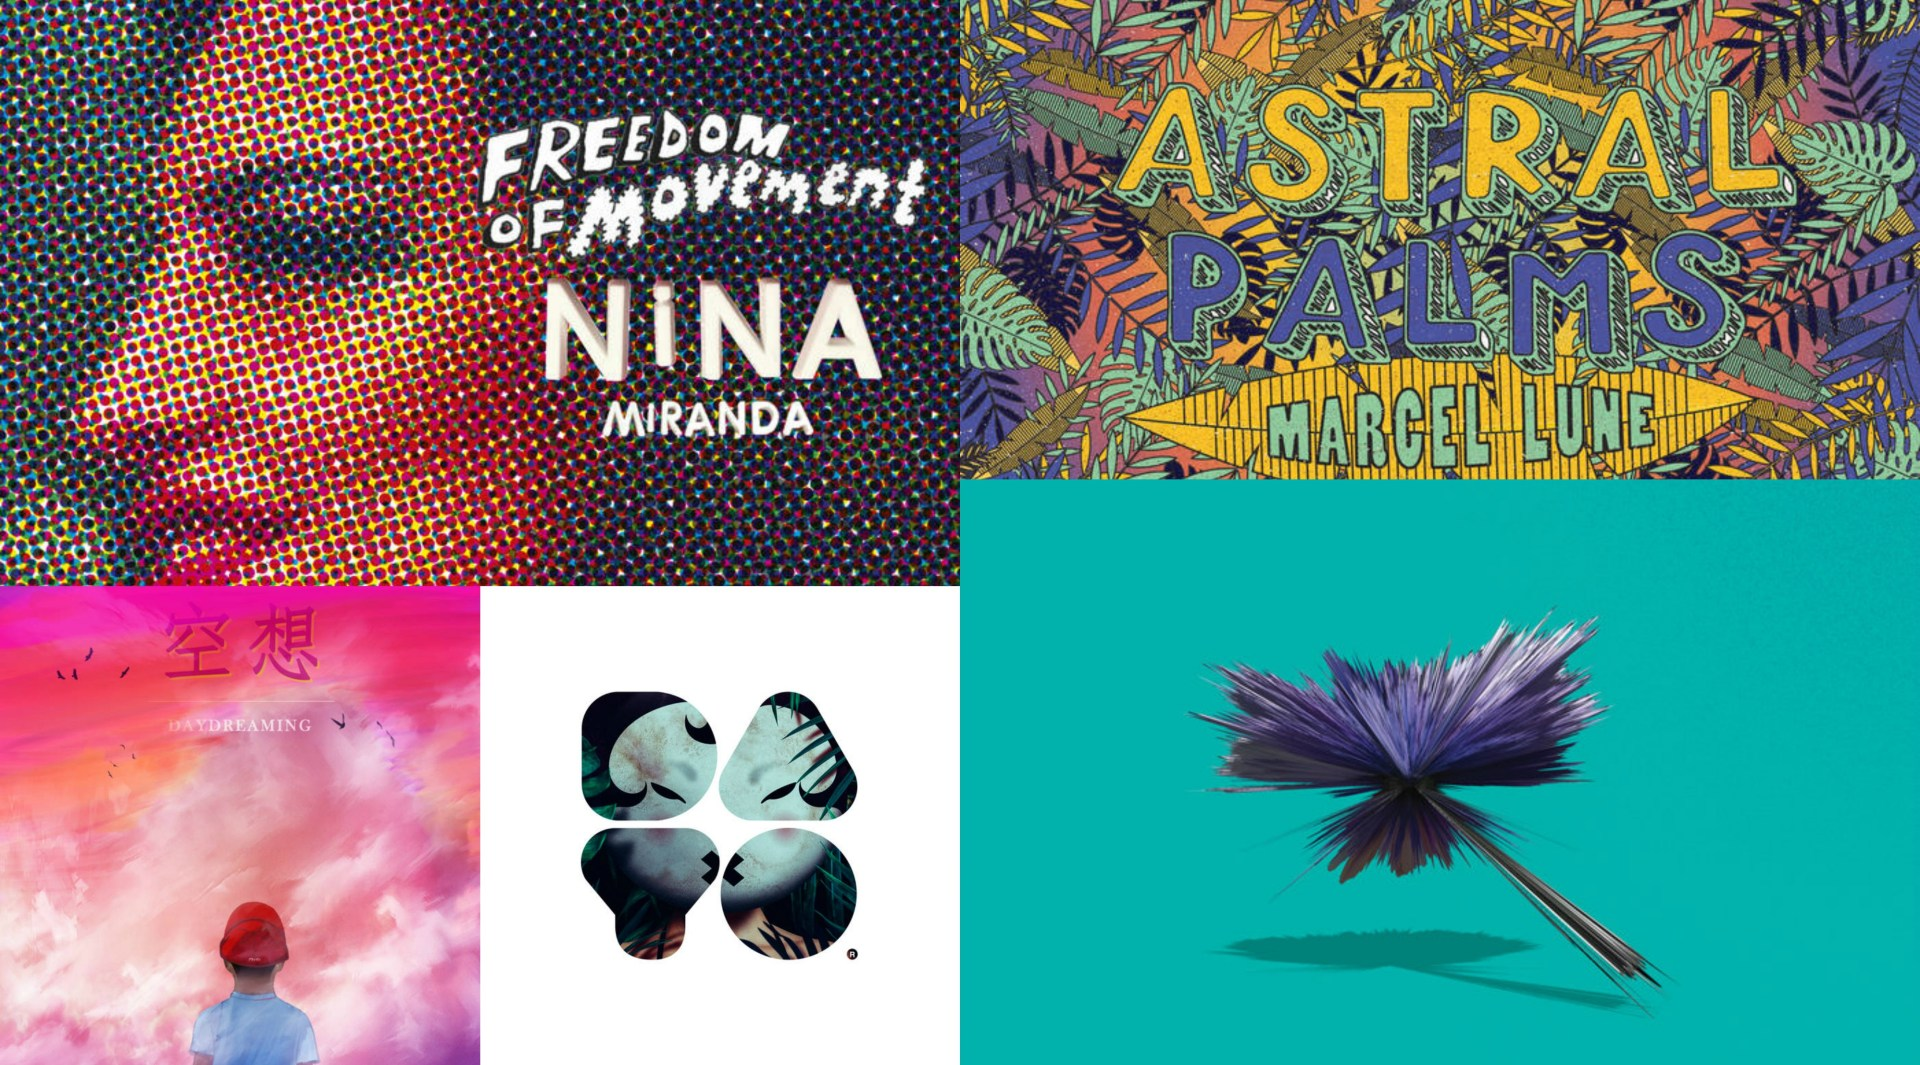 New music you may have missed.